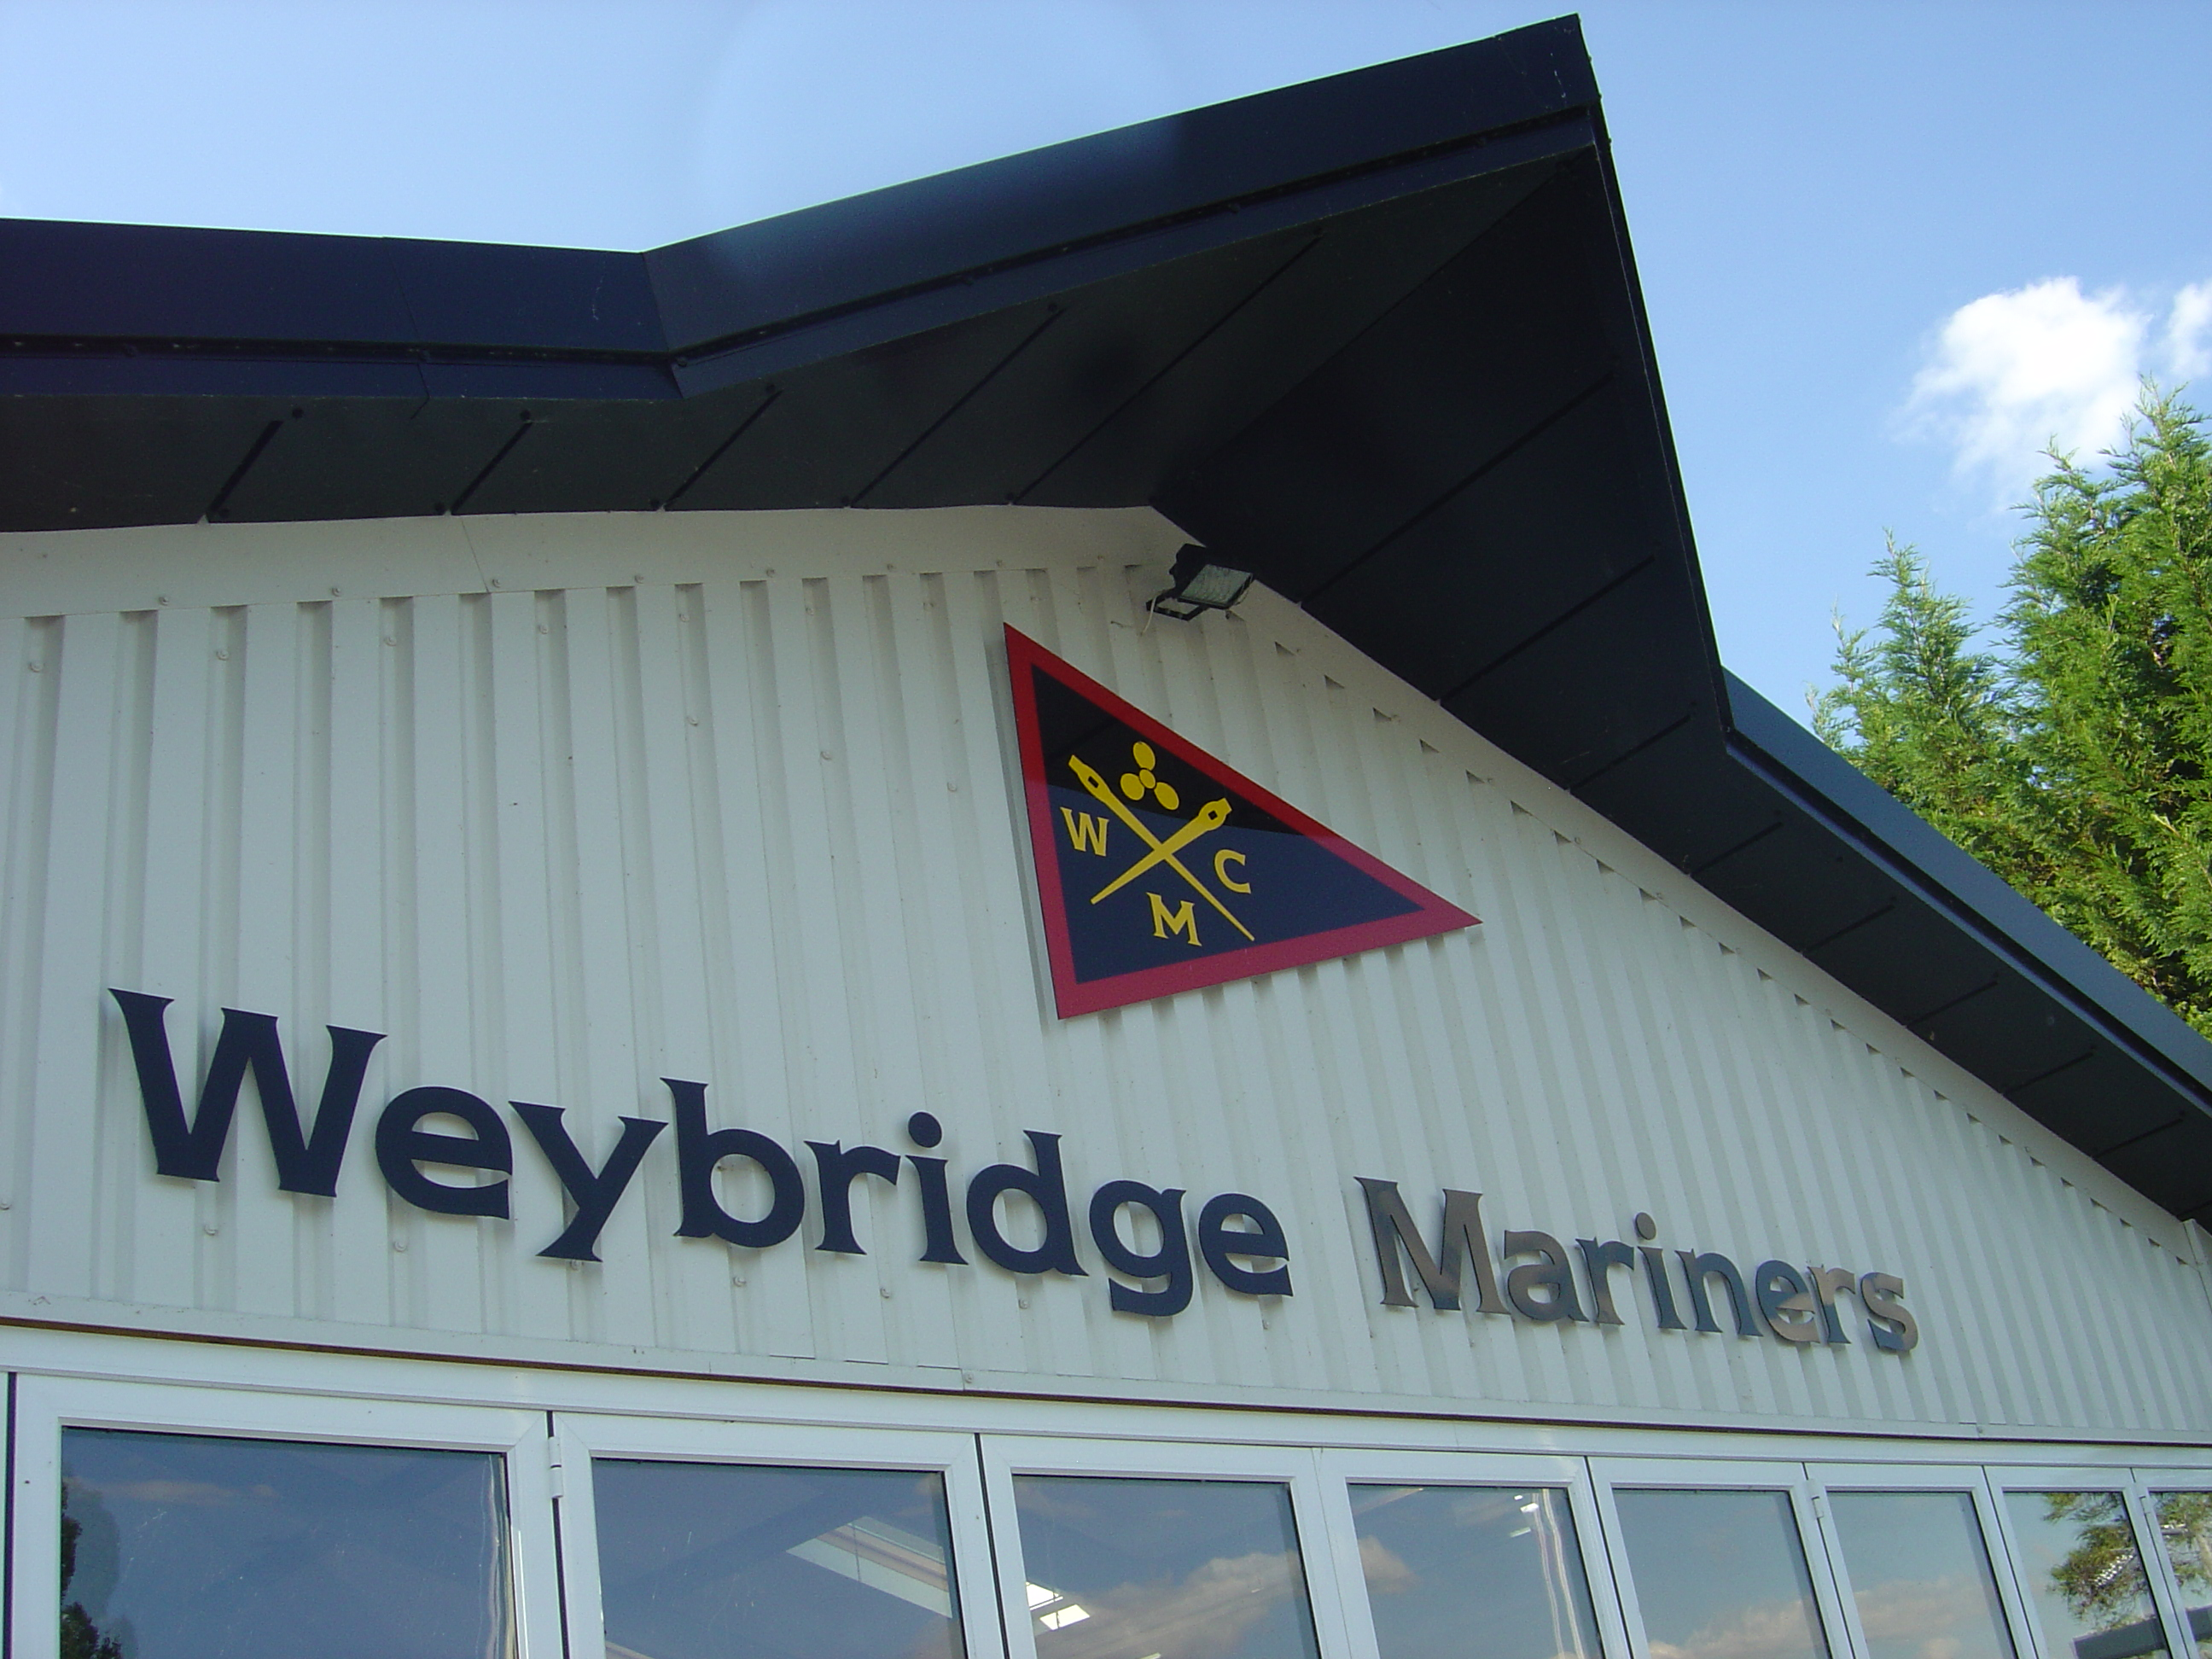 Weybridge Mariners Club